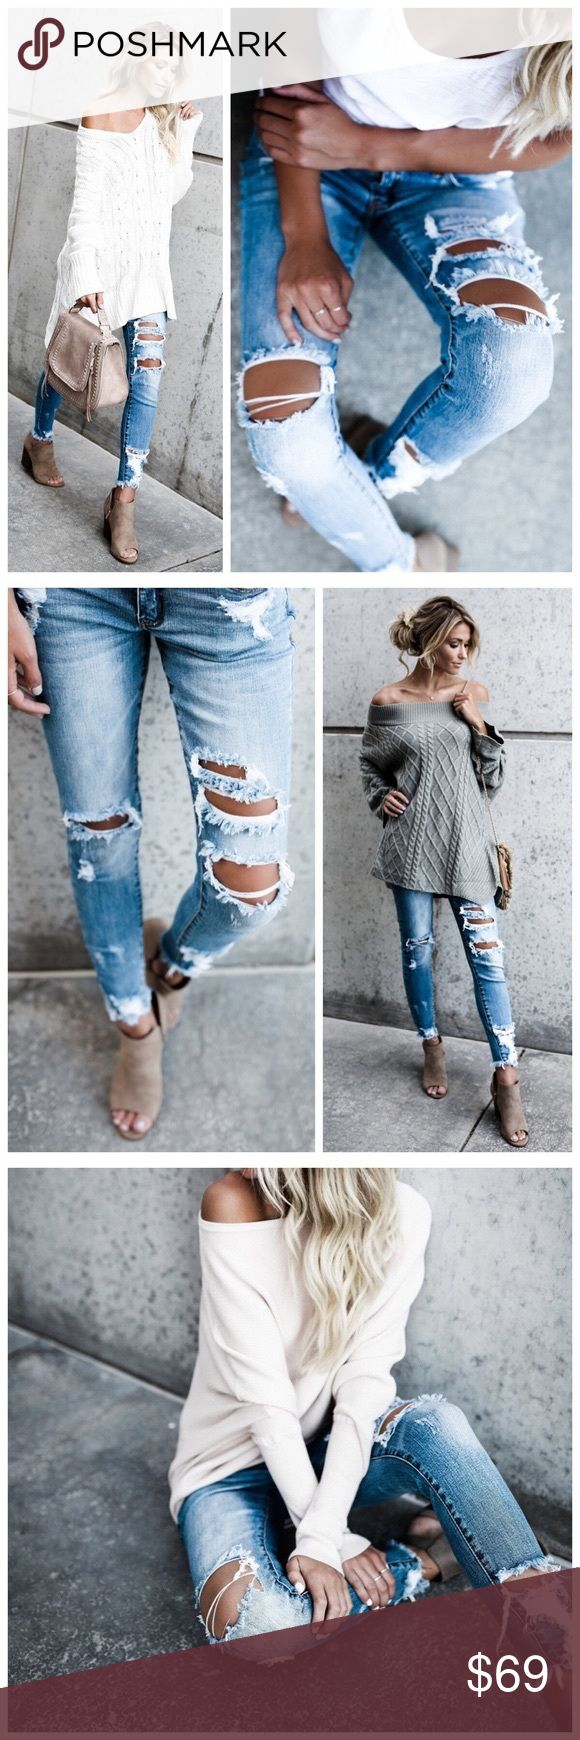 """BEST SELLER* New distressed skinny jeans Frayed Ankle Classic 5 Pocket Fit Inseam to hem length on a size 1 measures 26"""" 98% Cotton and 2% Spandex Model is 5'7"""" and wears a 1  Please allow 3-7 business days for shipment as this restock gas just been ordered  PRICE FIRM Jeans Skinny"""